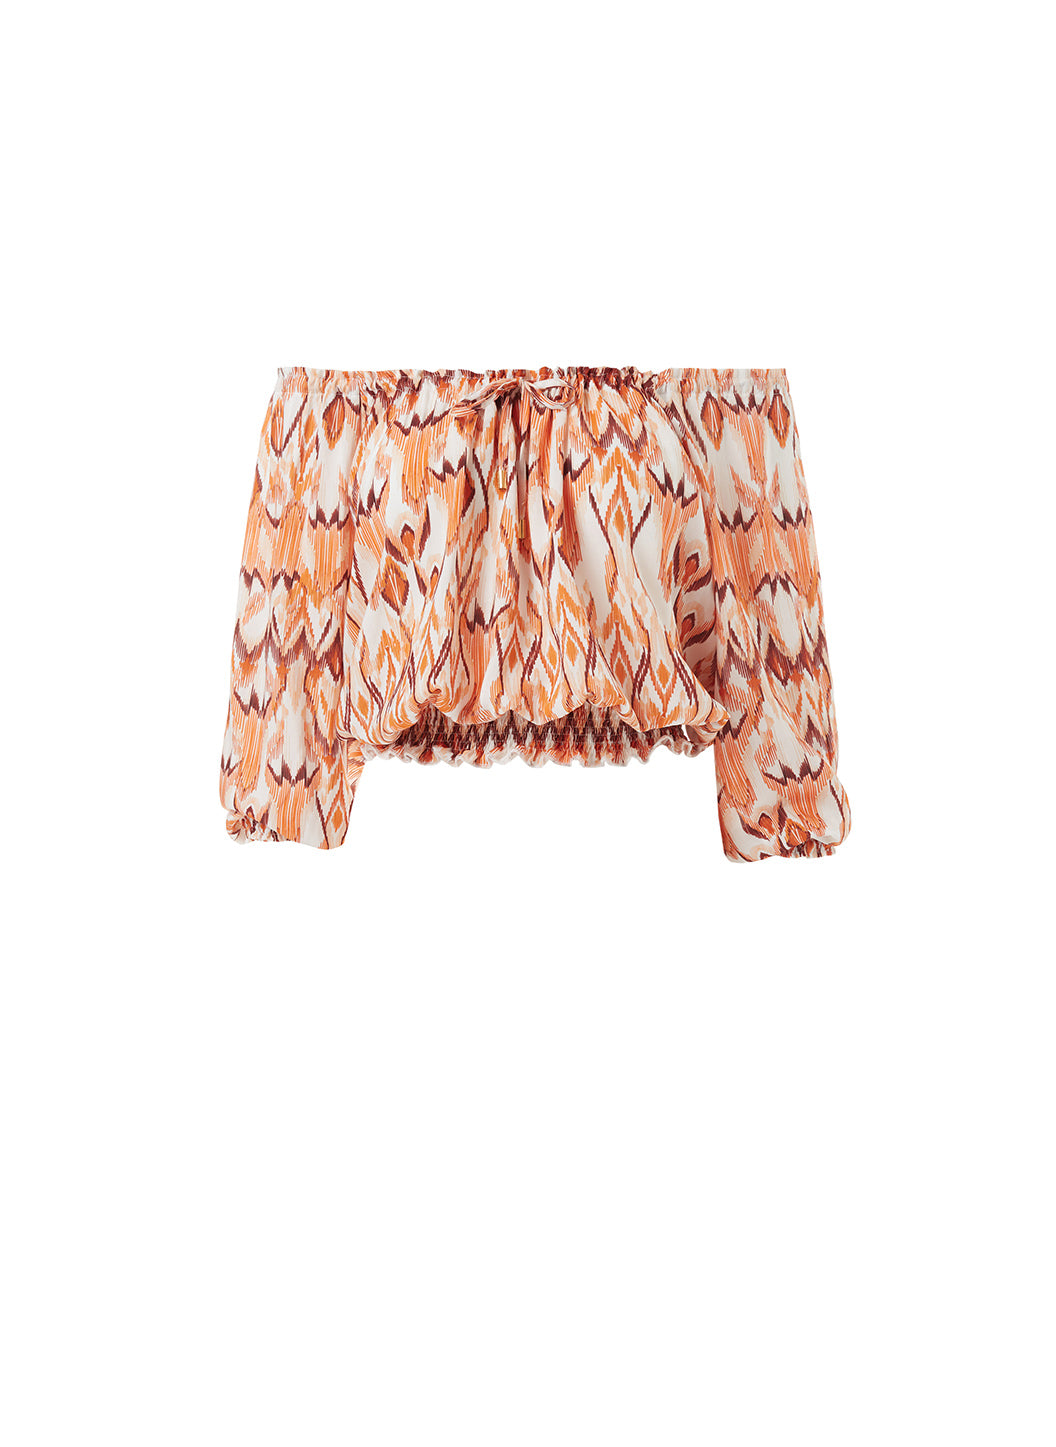 Anne Ikat Off The Shoulder Top